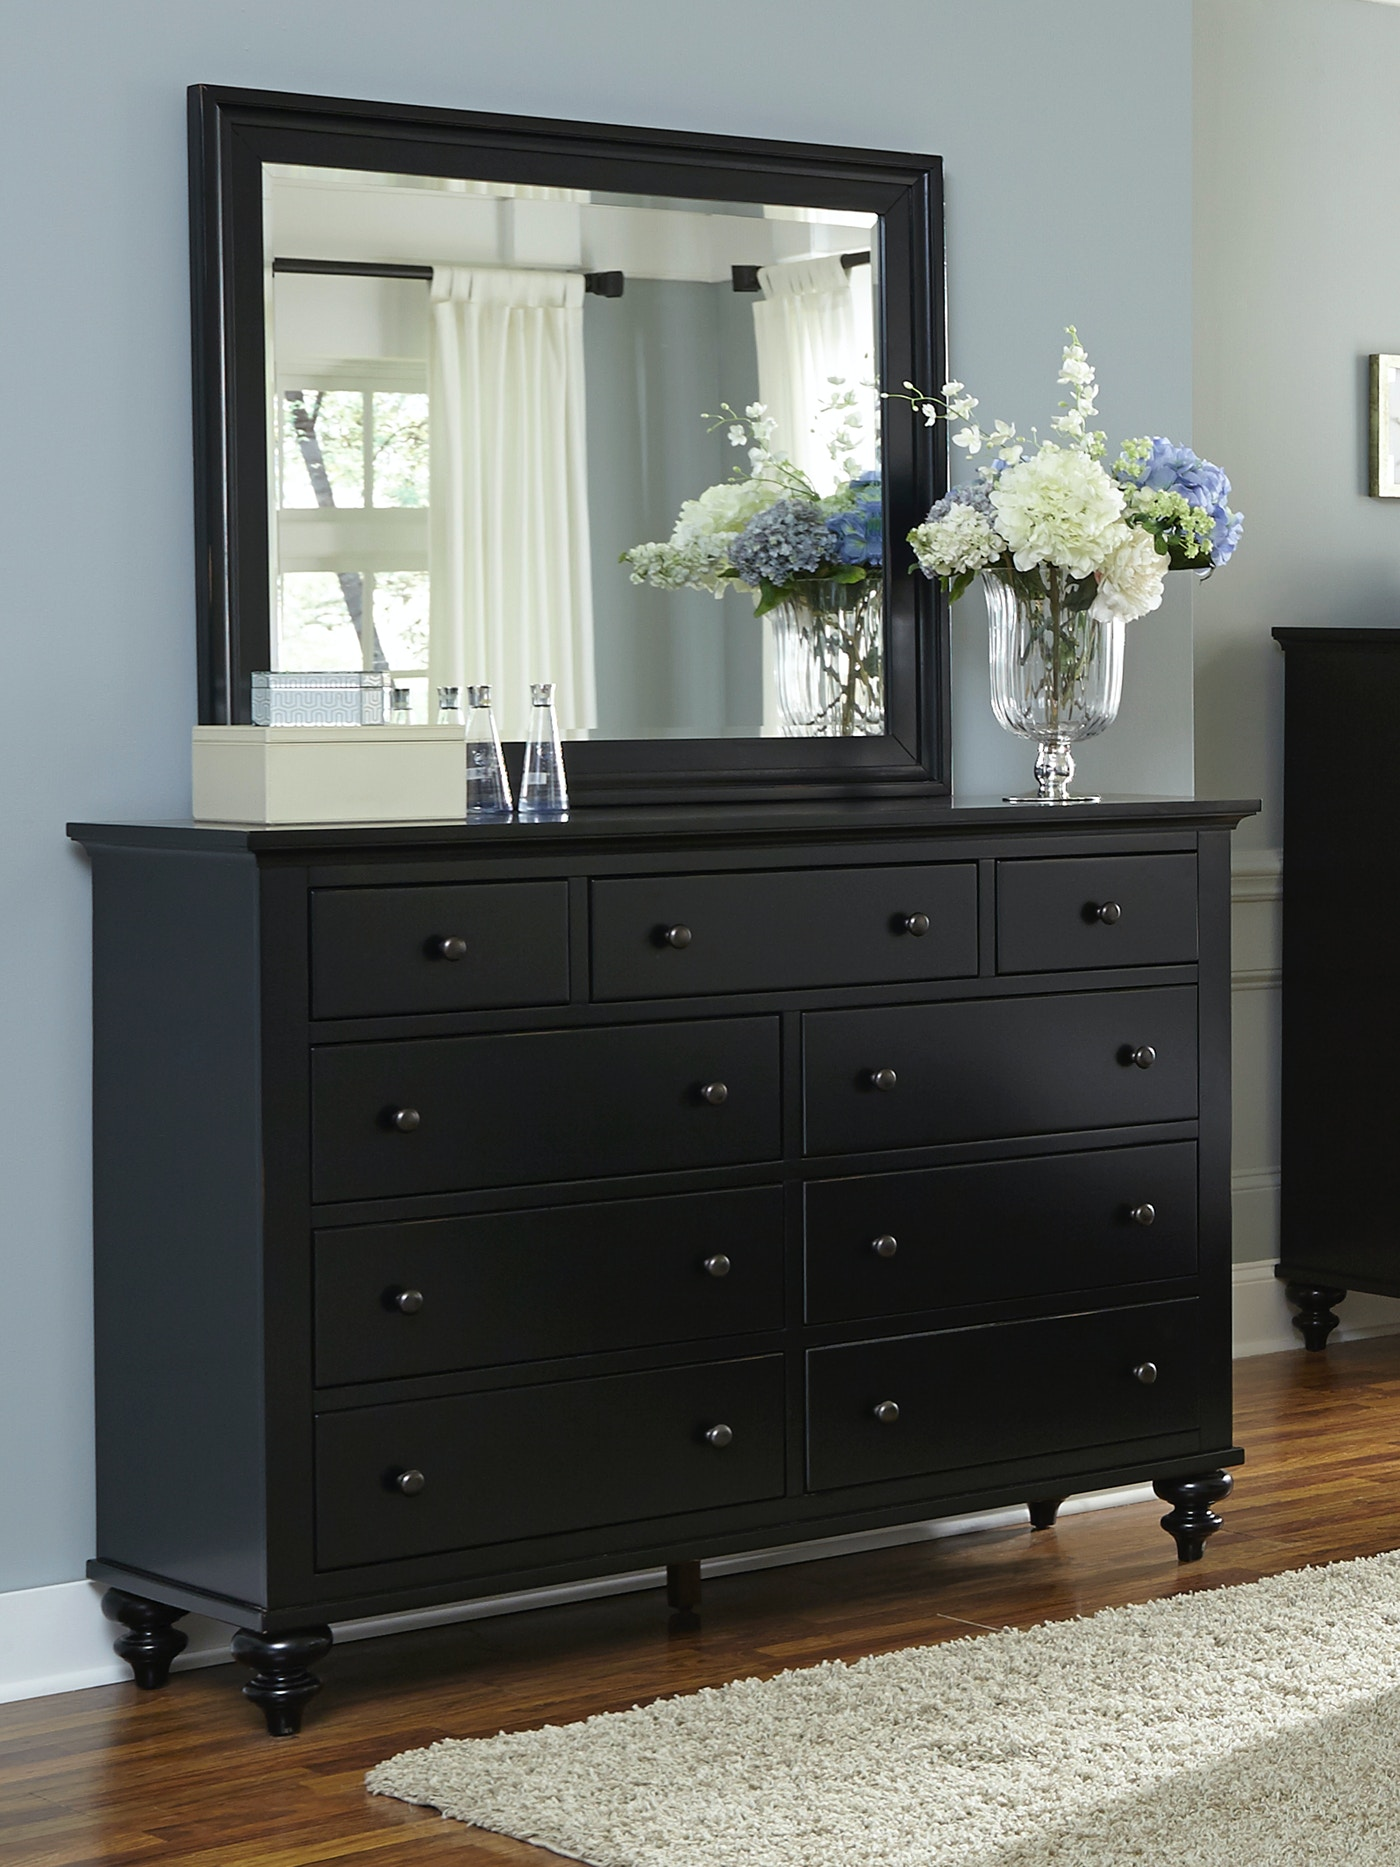 Liberty Furniture Bedroom Hamilton Dresser Black 050948 Furniture Fair Cincinnati Dayton